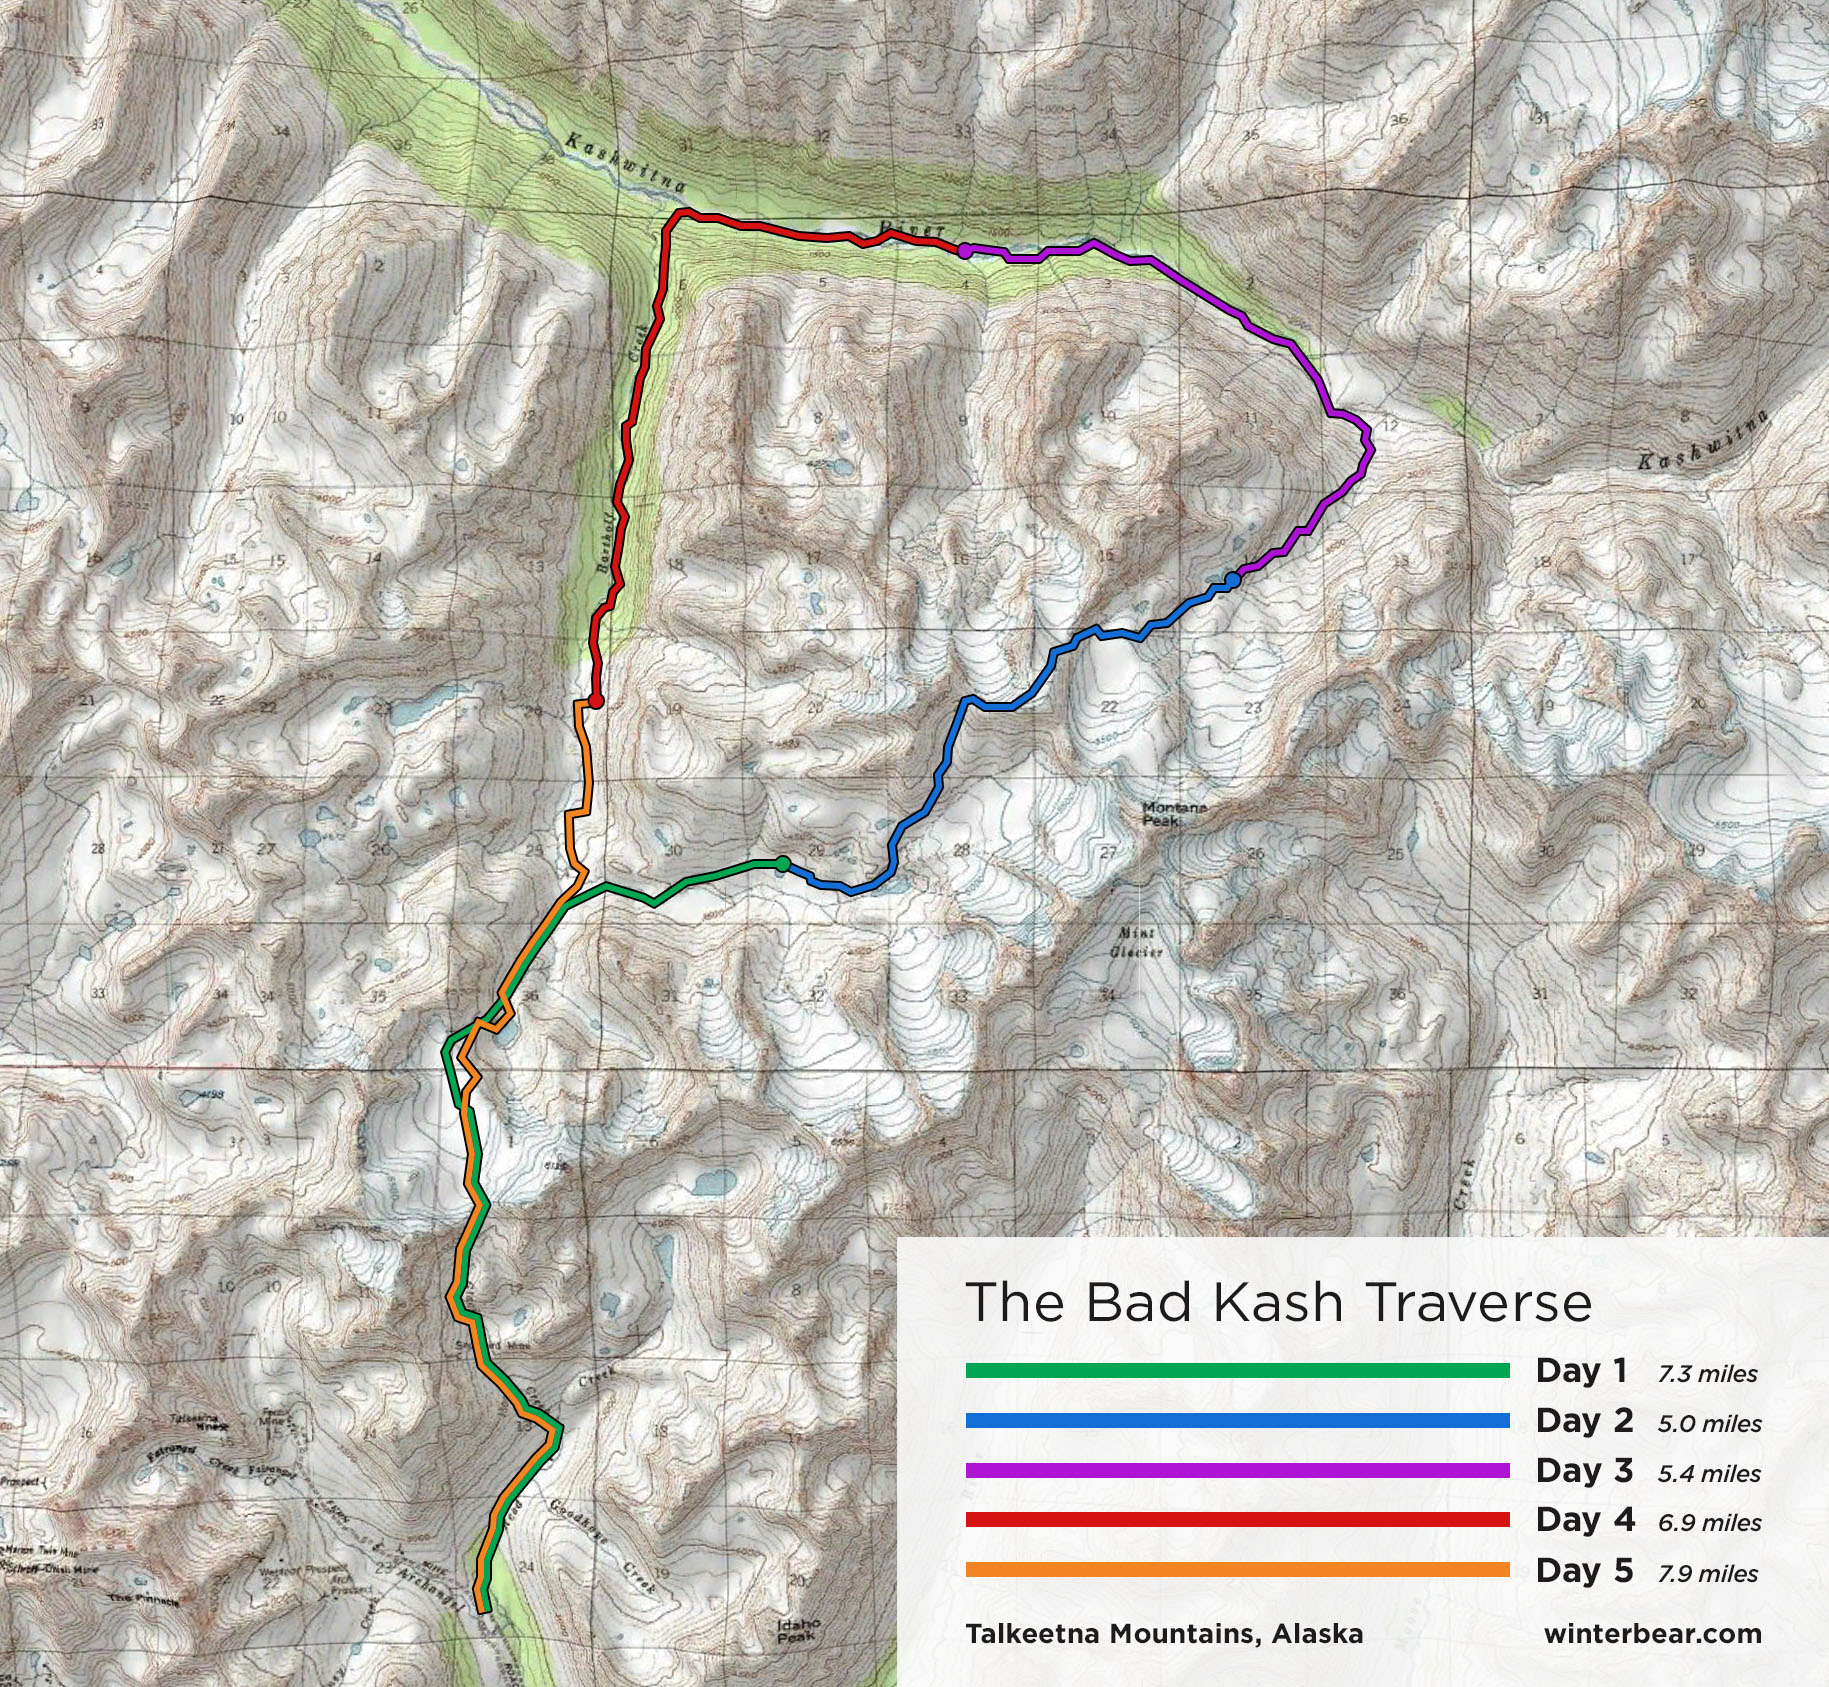 The Bad Kash route map